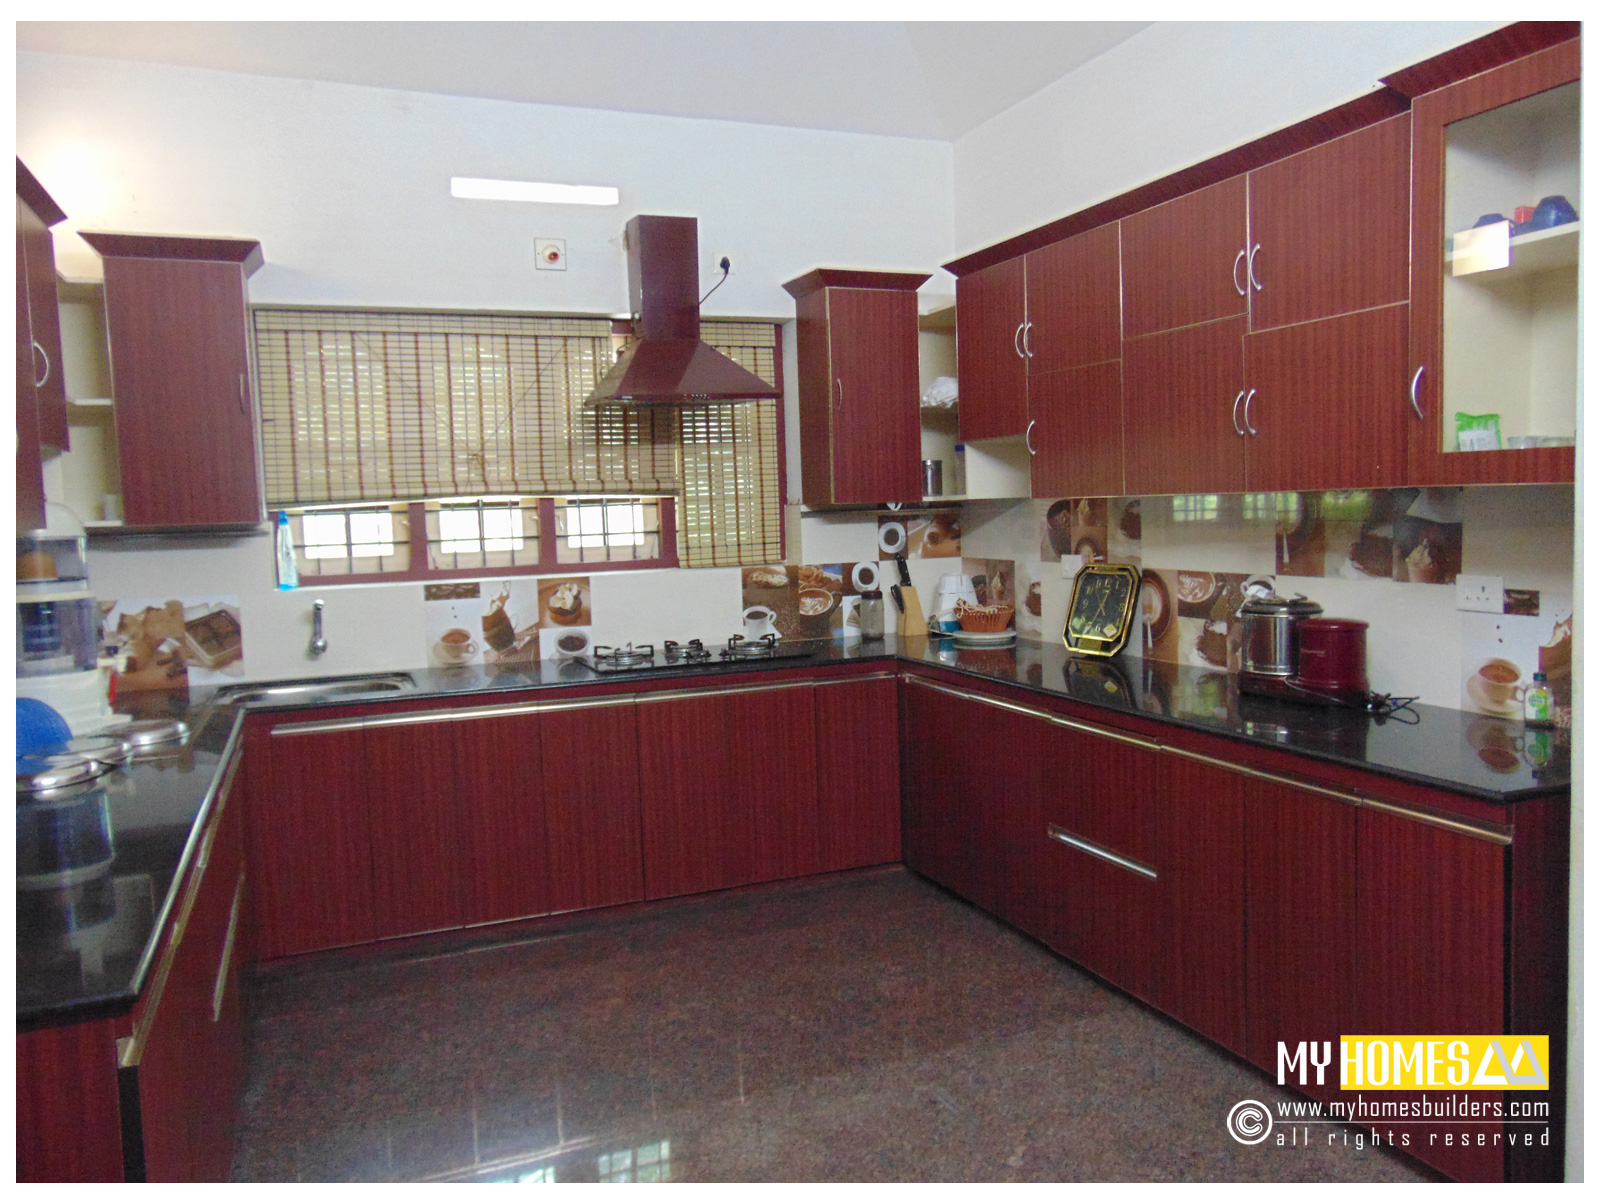 Budget house kerala home designers builder in thrissur india for House kitchen ideas